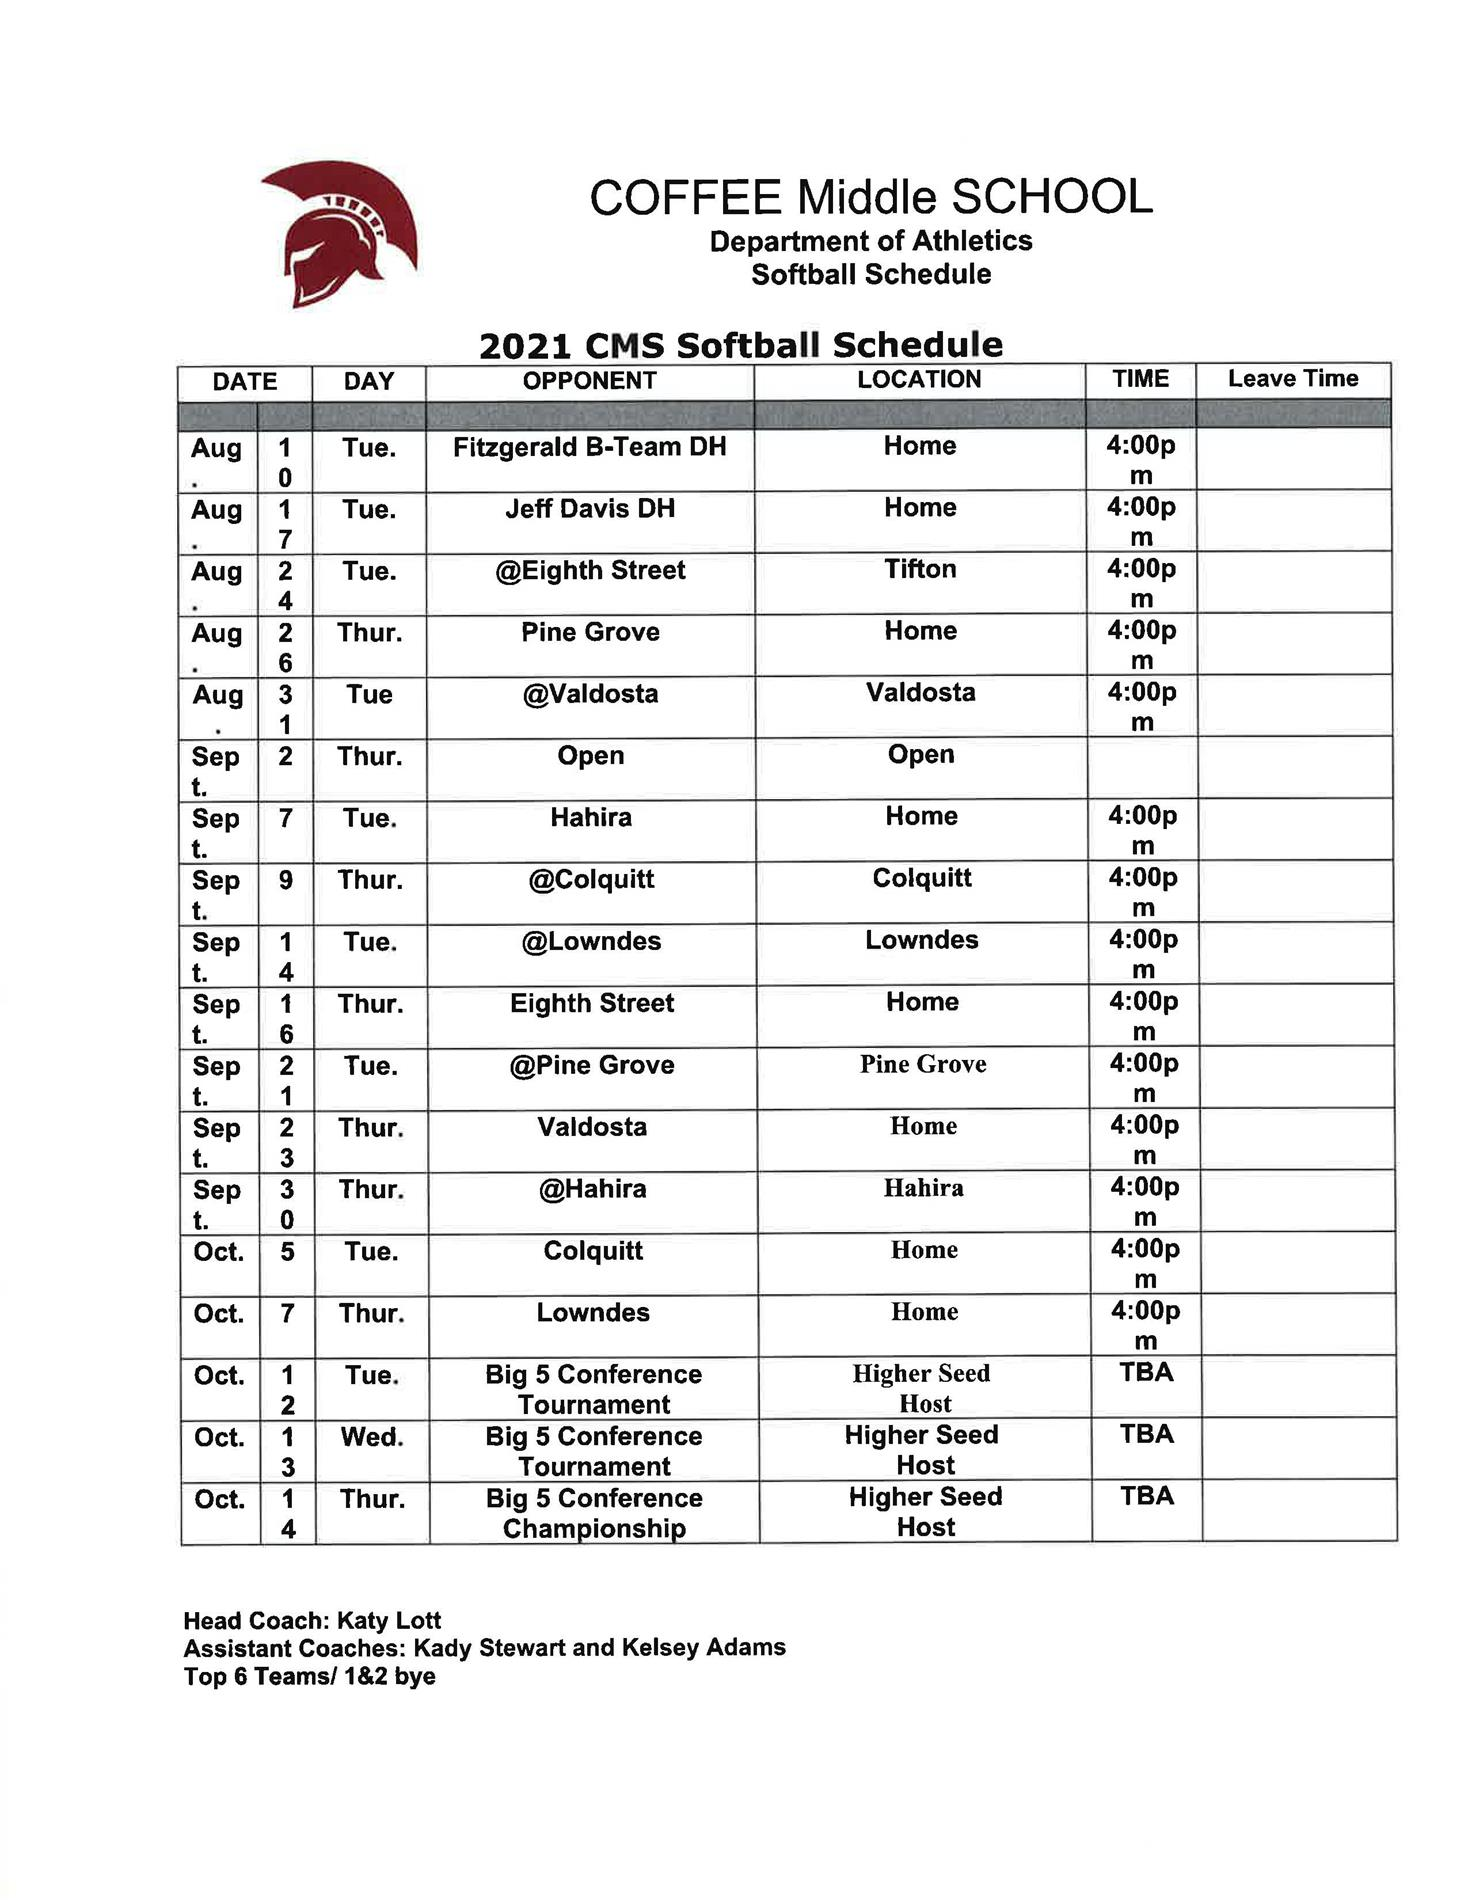 2021 Coffee Middle School Softball Schedule